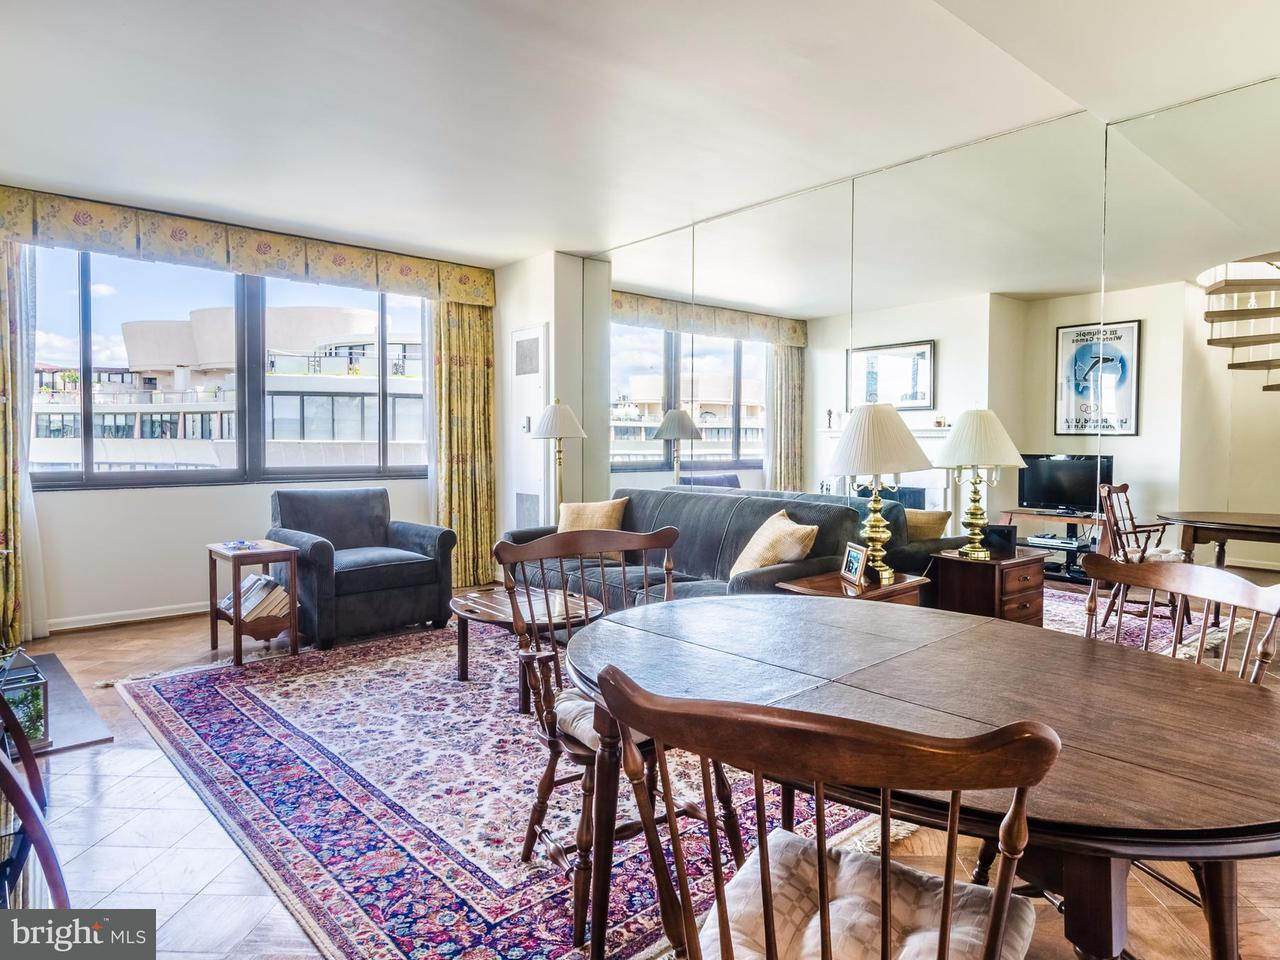 Additional photo for property listing at 700 New Hampshire Ave Nw #1514 700 New Hampshire Ave Nw #1514 Washington, District Of Columbia 20037 United States